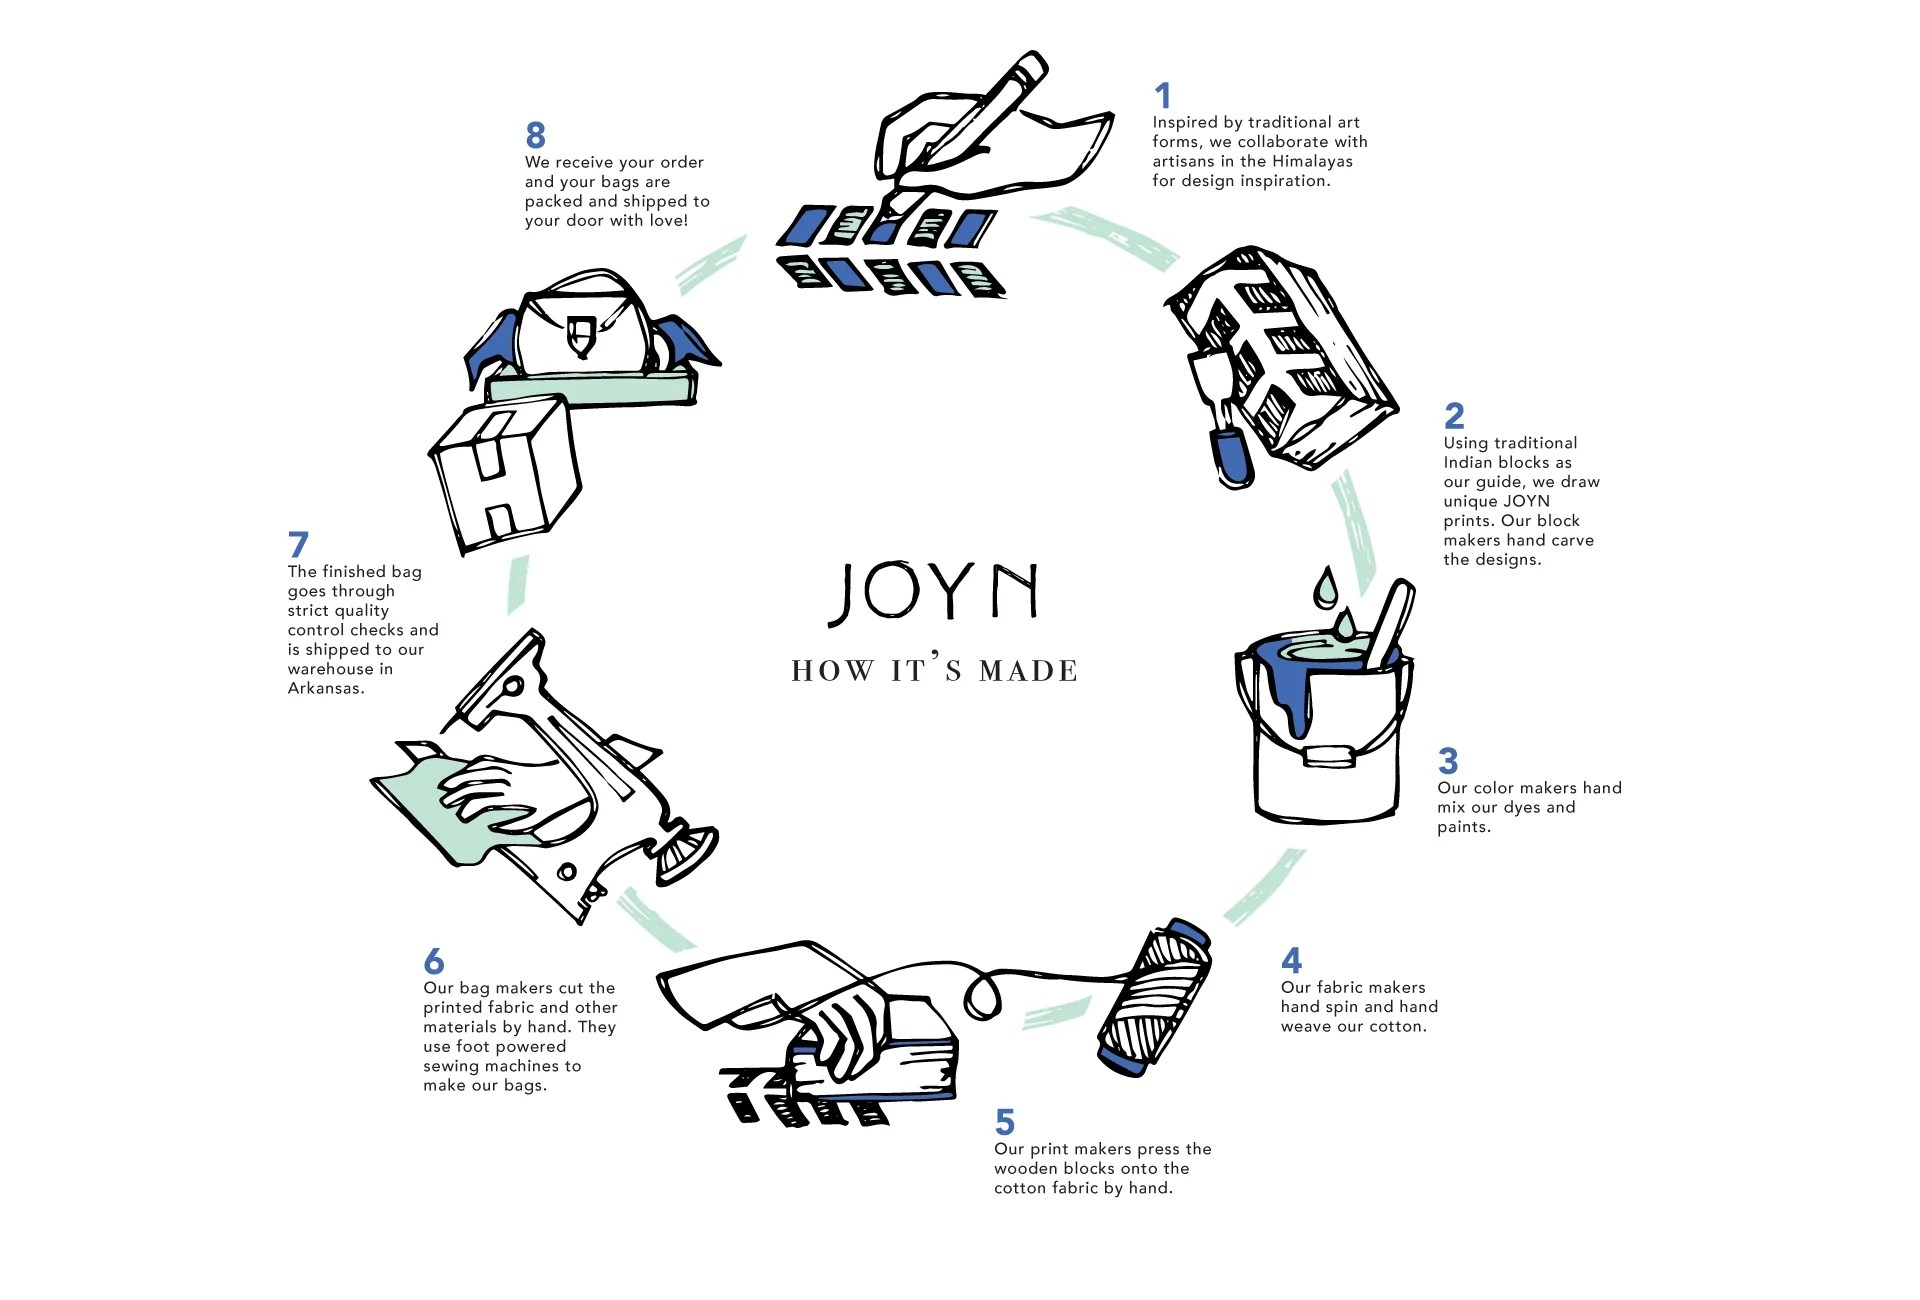 hight resolution of life cycle of a joyn bag